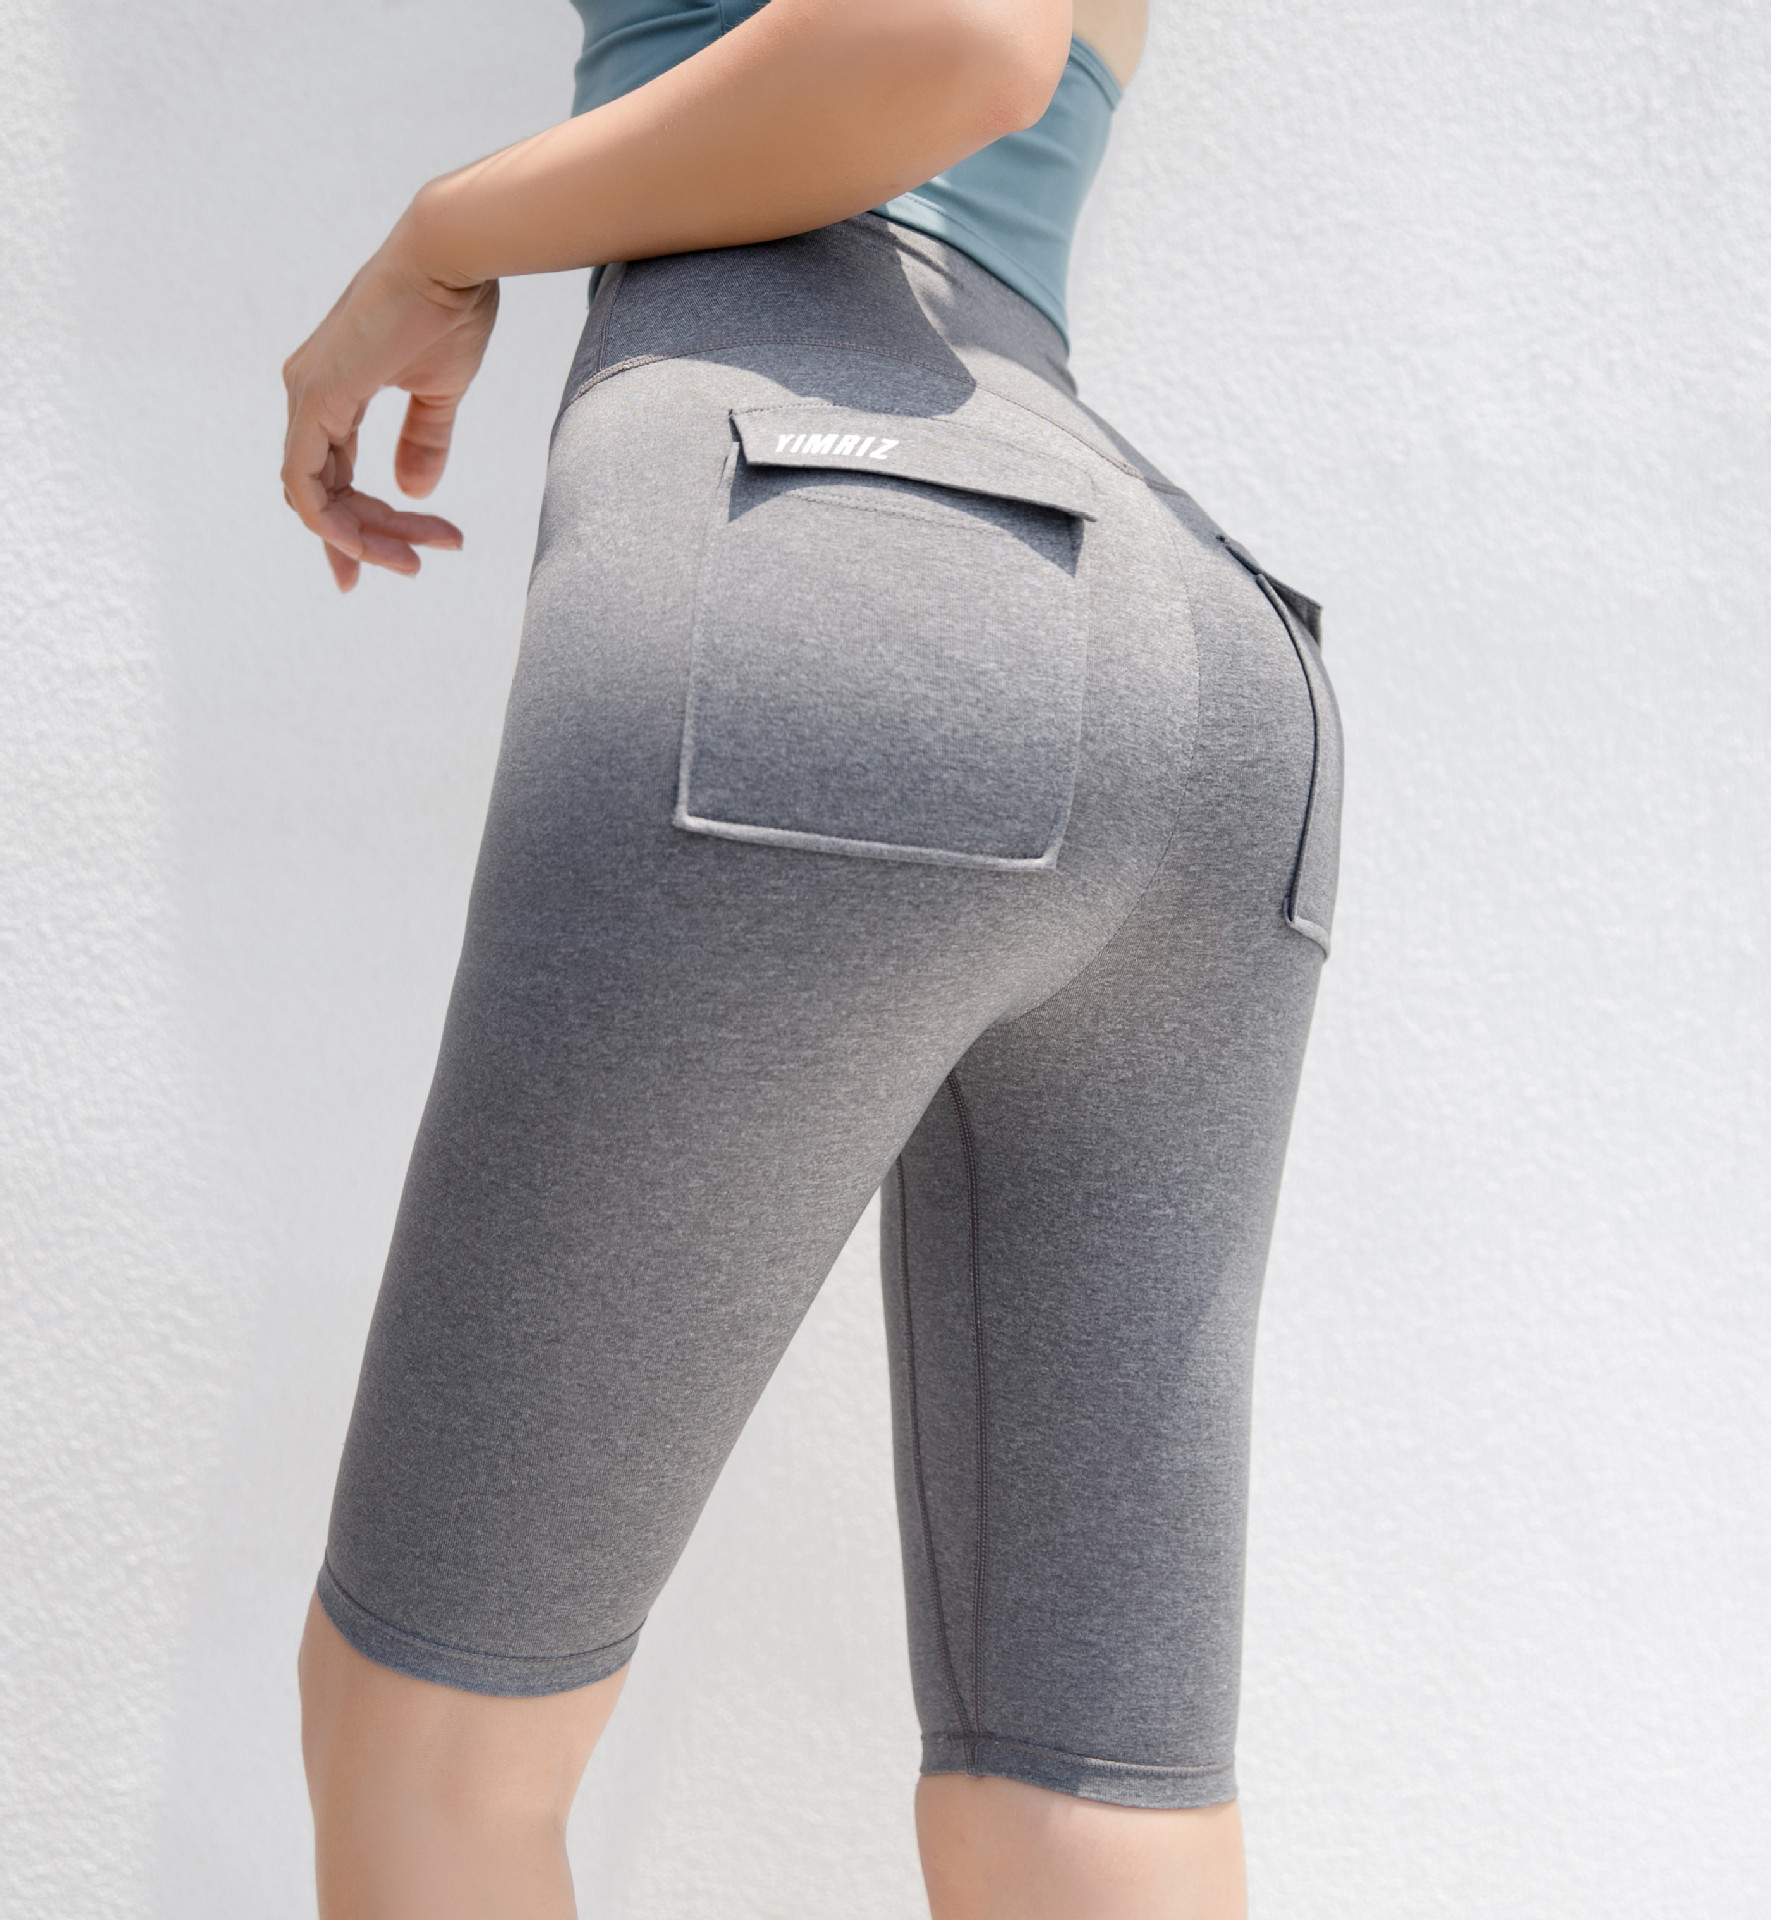 Woman Workout Capris Leggings Running Slim Fitness Quick Drying Casual Stretchy Leggings with Pocket High Waist Yoga Pants